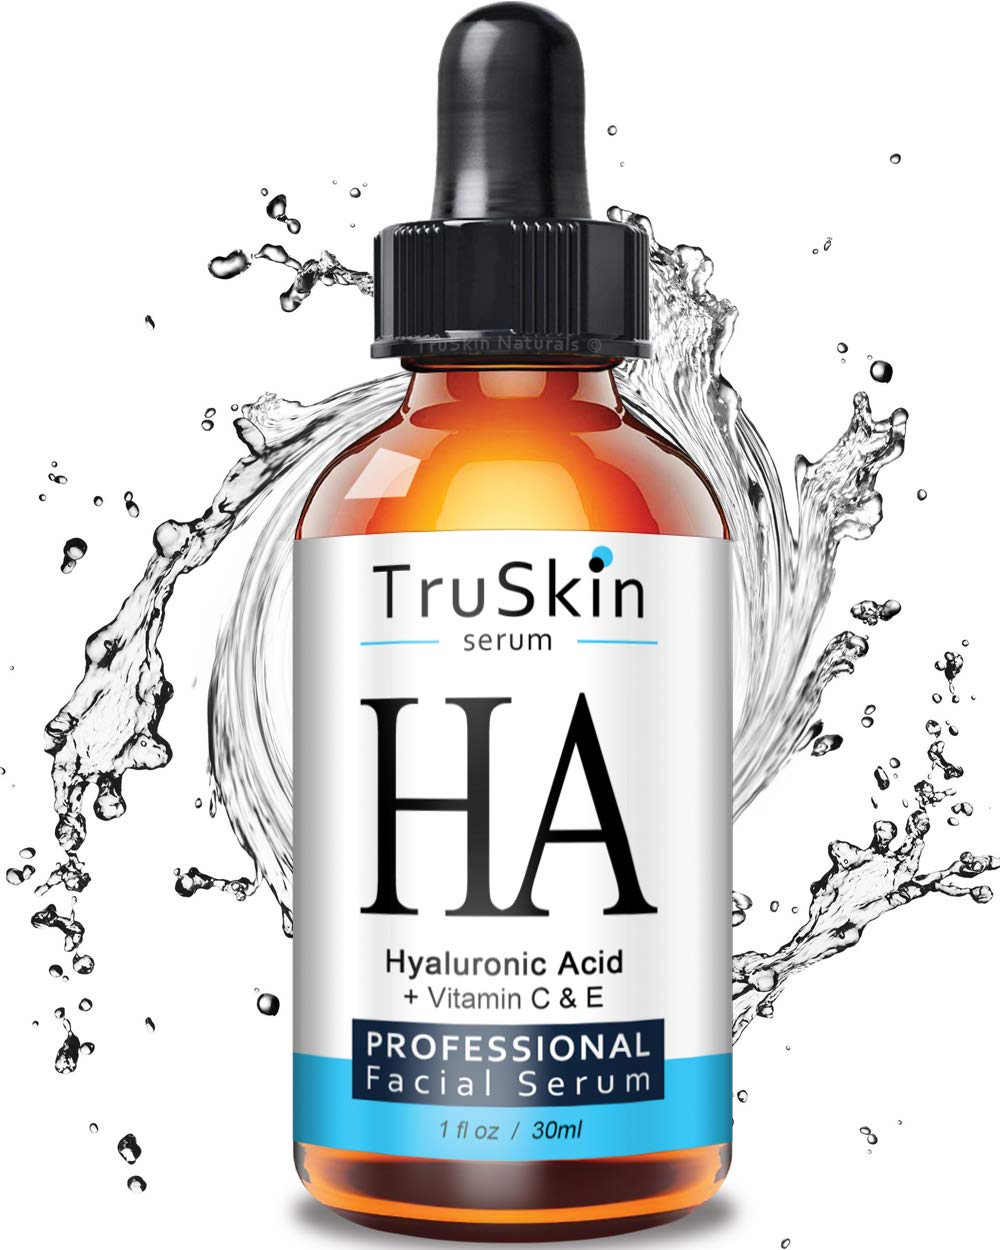 TruSkin HA Hyaluronic Acid + Vitamin C & E Professional Face Serum